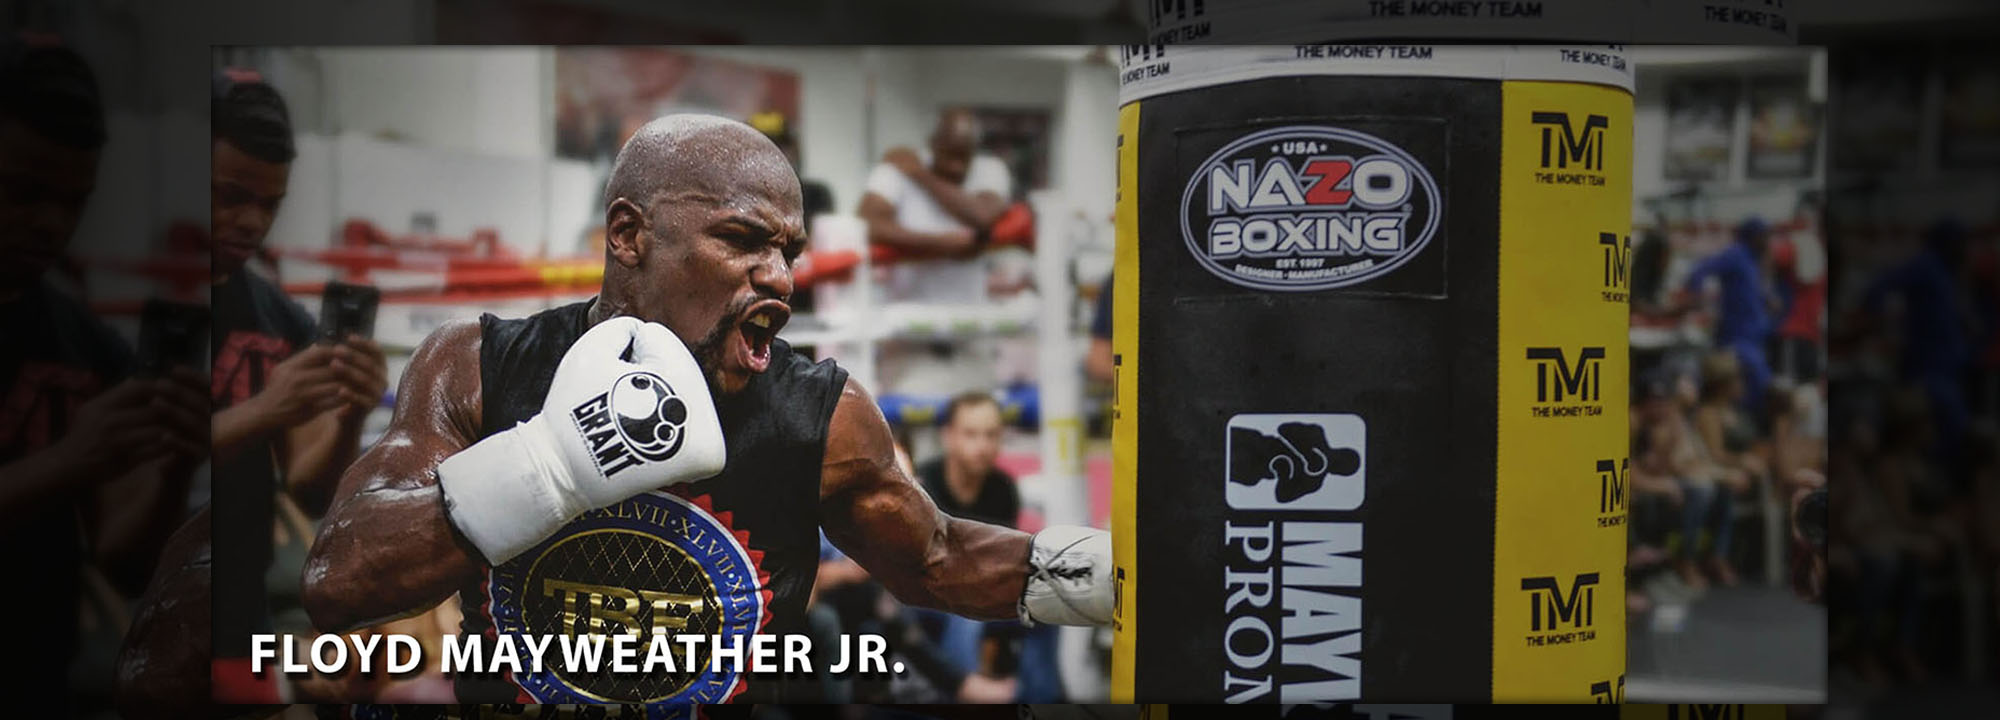 tmt heavy bag Mayweather punching bag